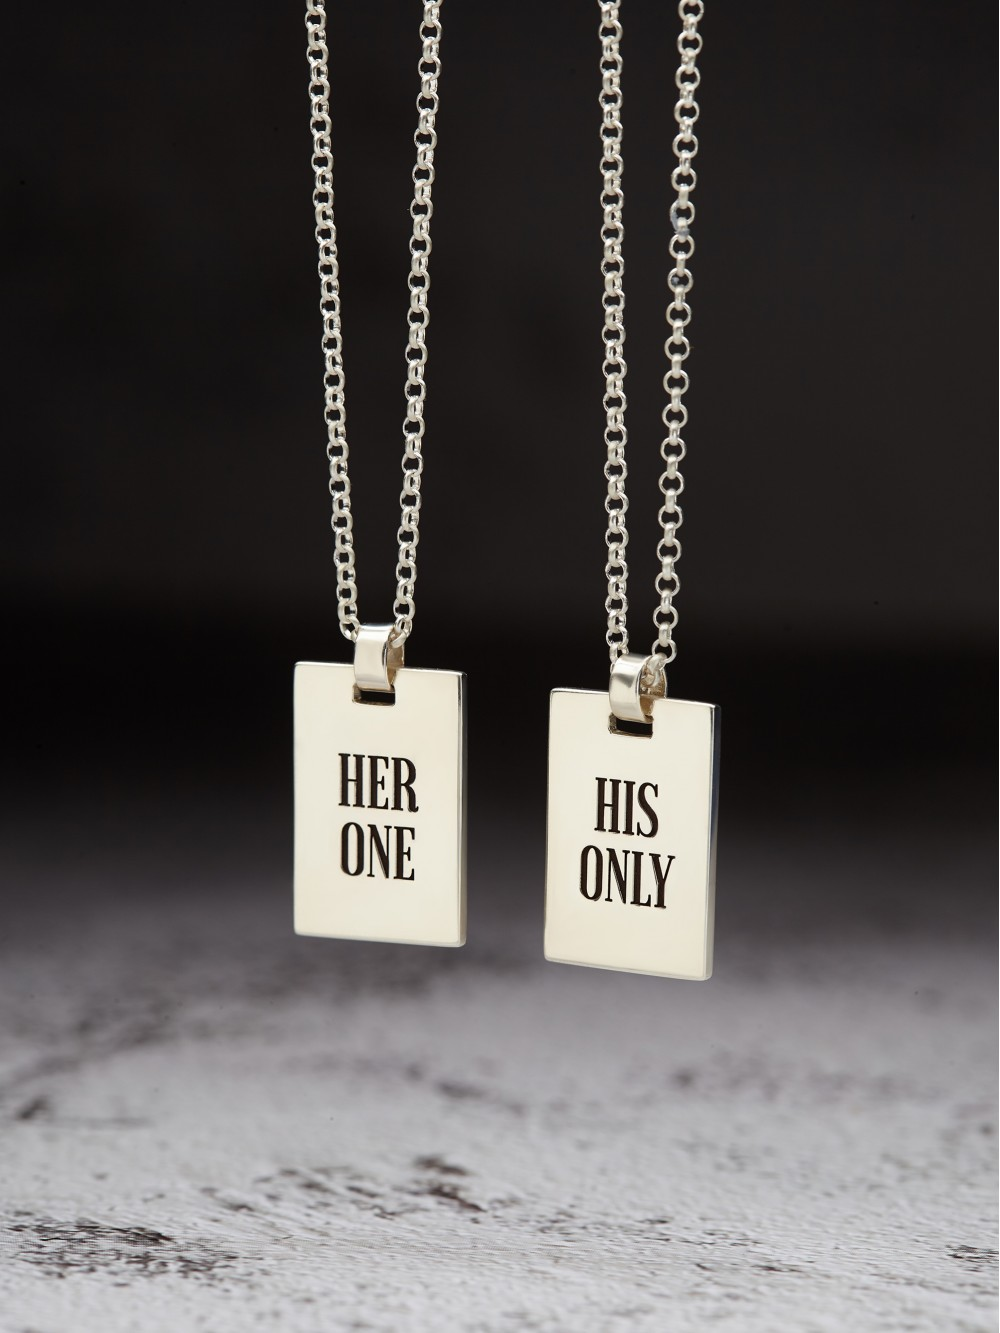 Her One His Only Necklaces for Couples